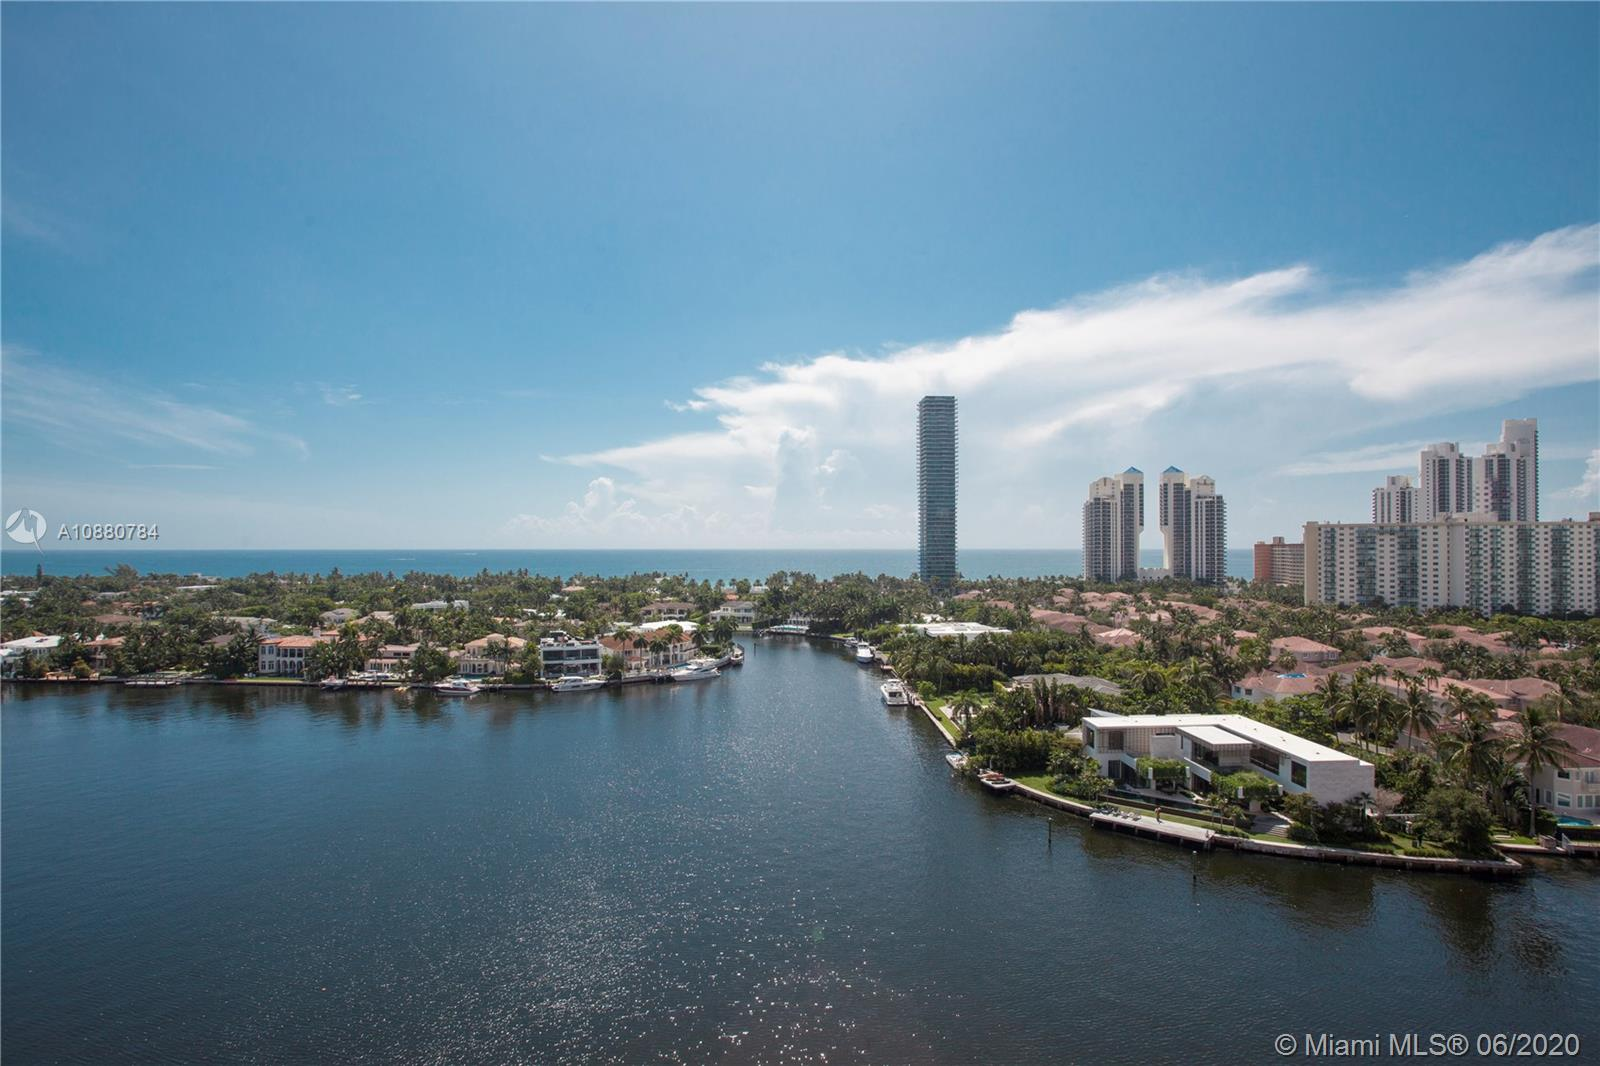 BEST BLDG IN TB!..Spectacular Vws NE to Ocean & Intracoastal..Spacious Corner 3BD, 2.5BA w/Huge GLASS BALCONY-Wrap Terrace..Beautiful Light WoodFloors Thru-out Living Areas & Smooth Ceilings..Contemporary & Elegant w/Updated Kitchen & Built-out Walk-in Closets...Elegant Bldg w/Luxury Amenities On TB's Exclusive Marina & TB's Worldclass PGA Golfcourse, Surrounded by 3.5 Mile Landscaped Jogging/Exercise Path.....Minutes to Beautiful Beaches, Fine Restaurants, Great Shopping, Int'l Airport...Walk to House of Worship..